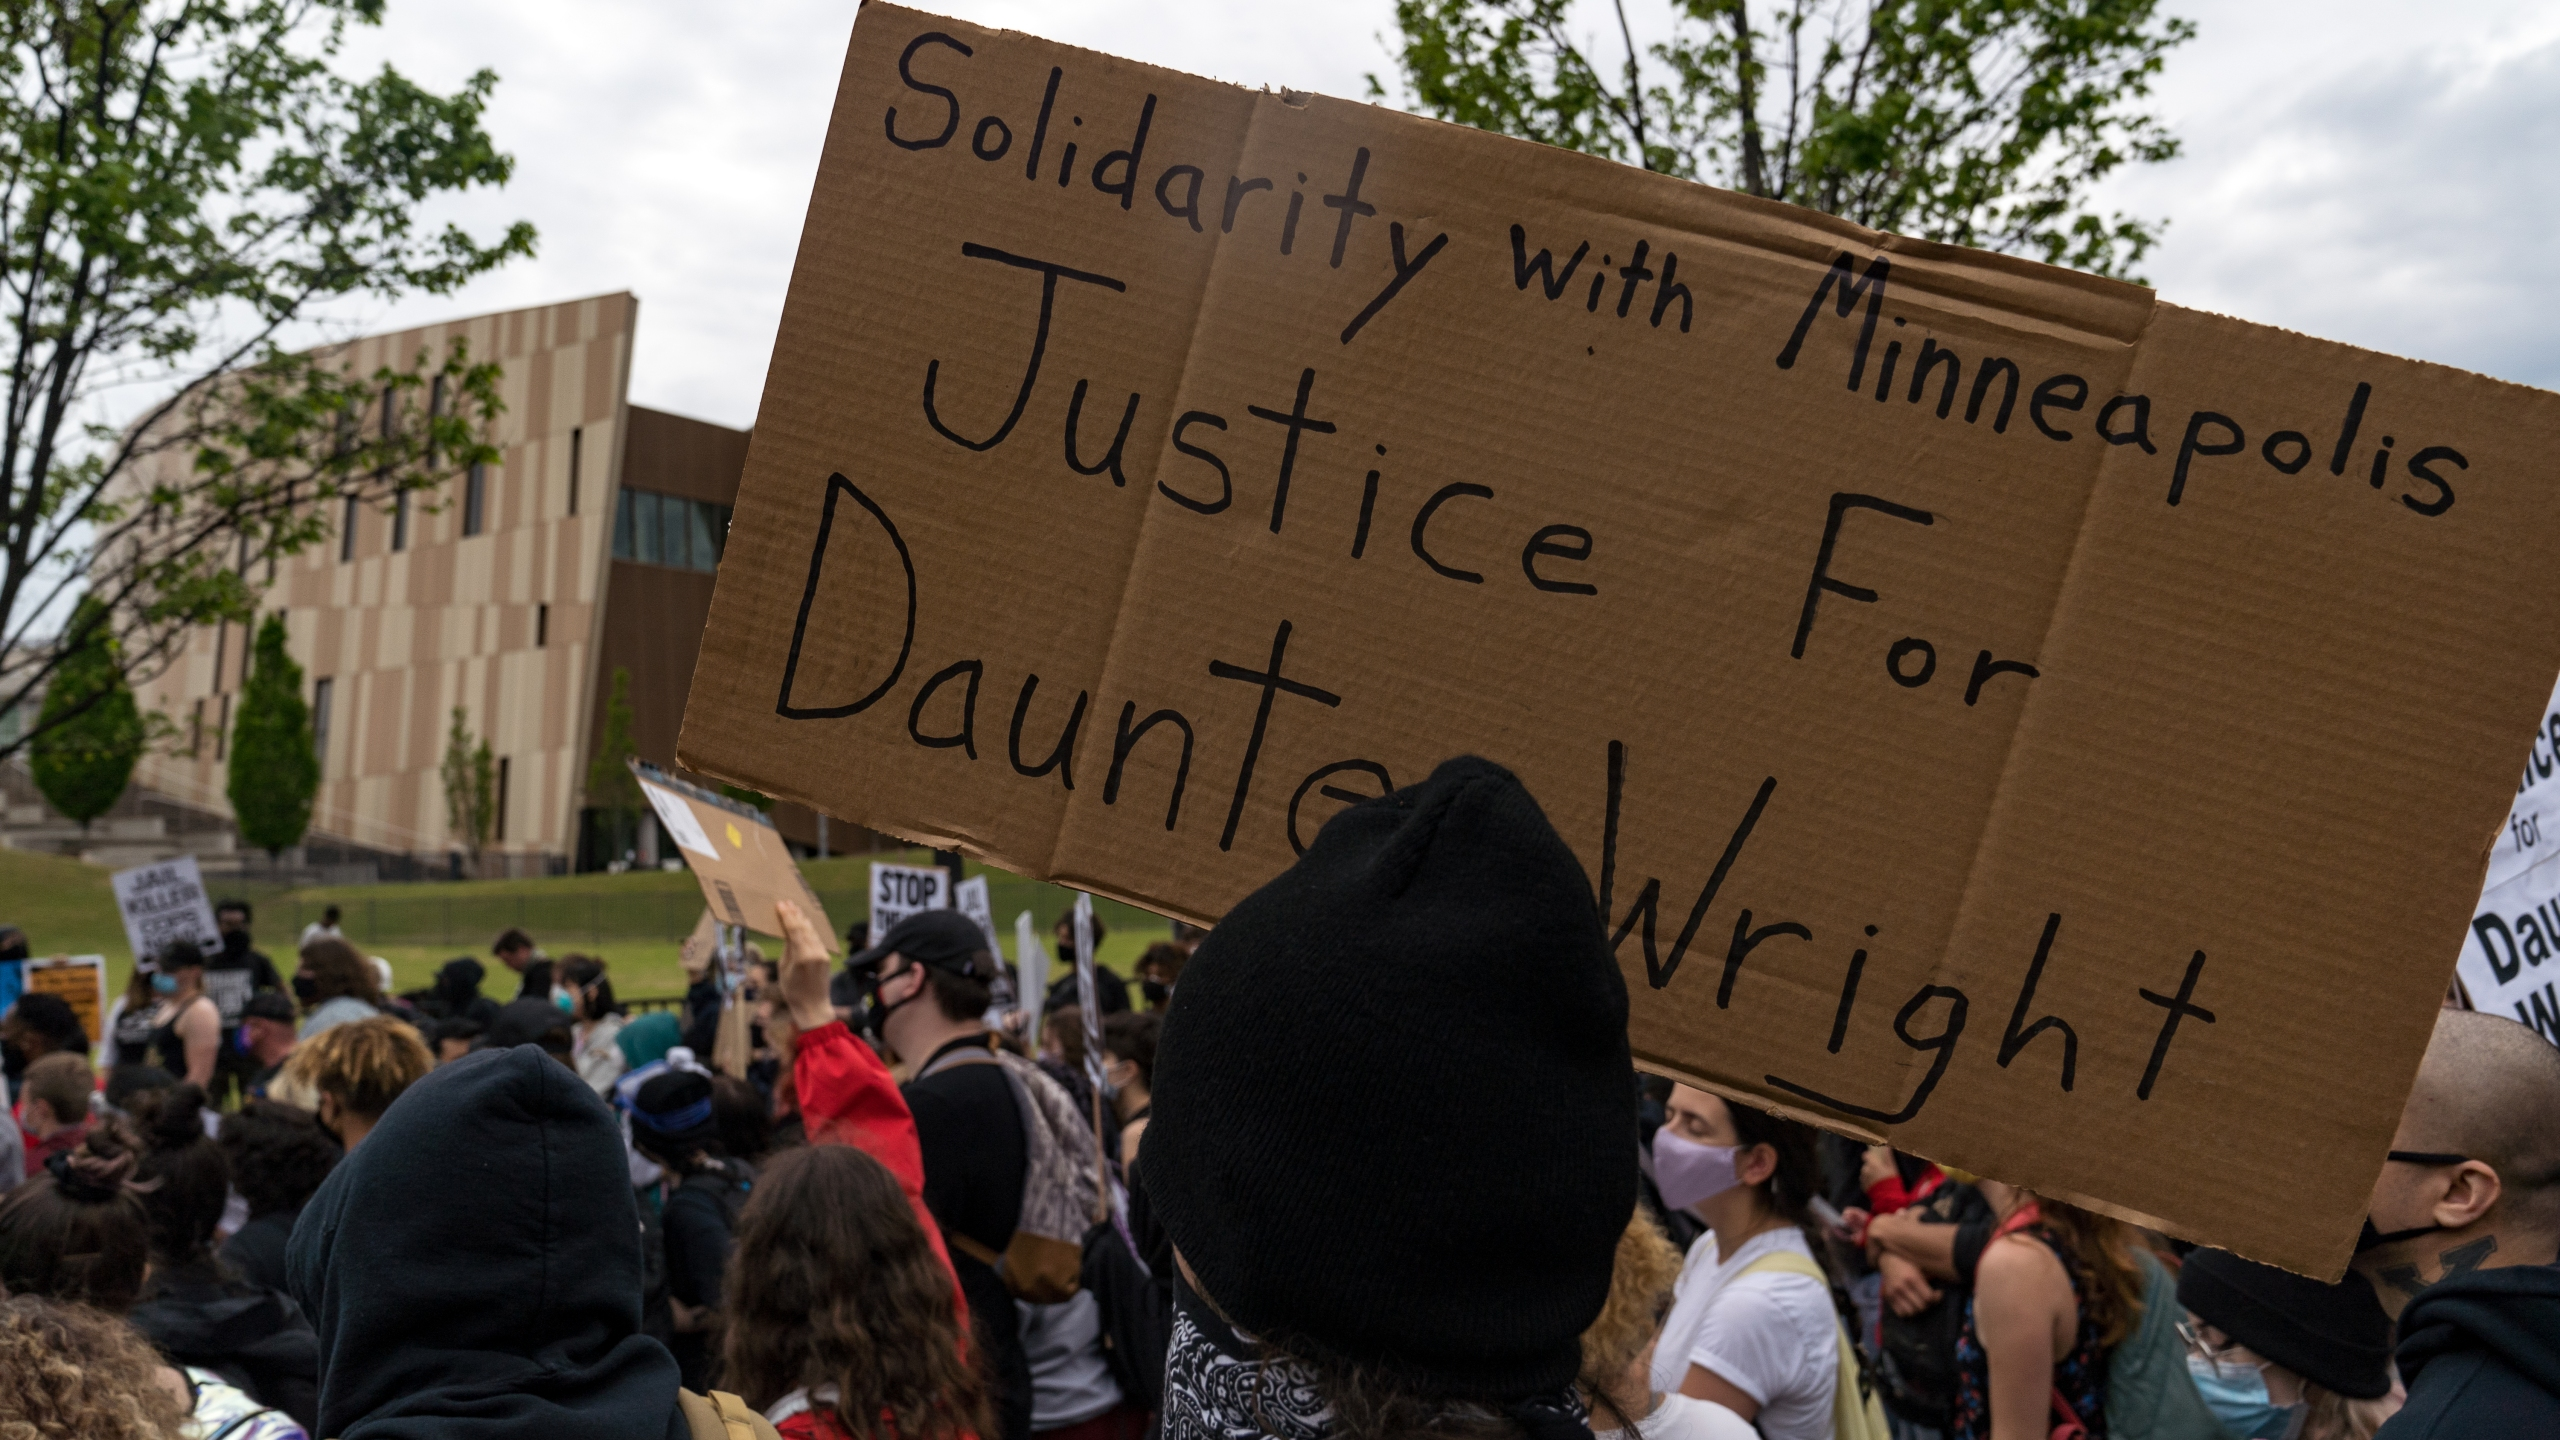 Demonstrators march to the National Center for Civil and Human Rights while protesting the shooting death of Daunte Wright on April 14, 2021, in Atlanta, Georgia. (Megan Varner/Getty Images)